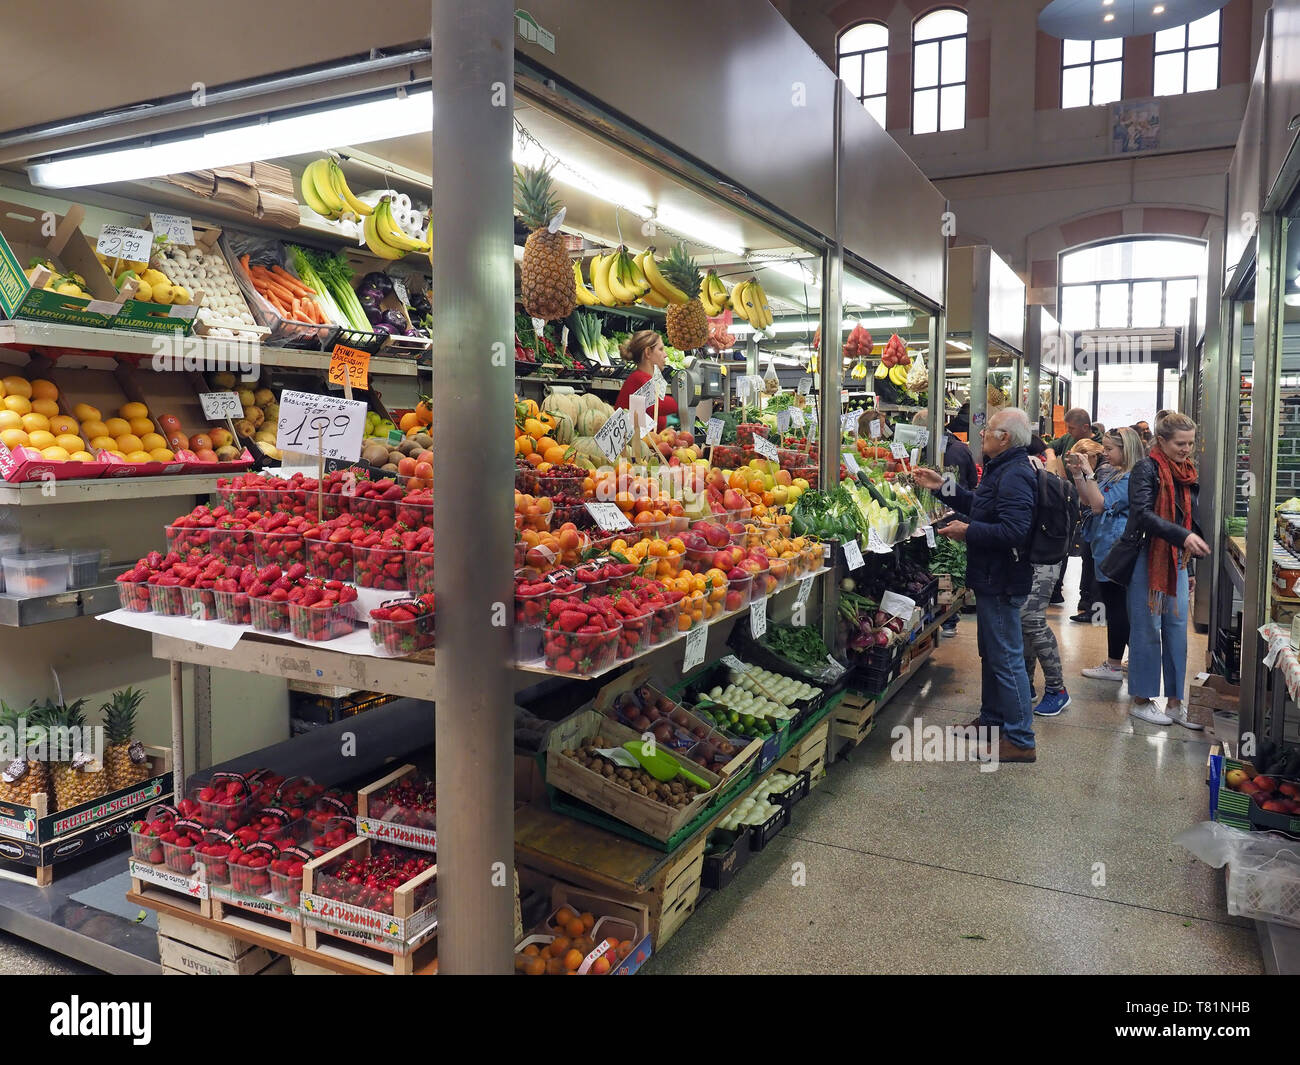 View of busy vegetable stalls inside the Mercato delle Erbe covered market in Bologna Italy - Stock Image